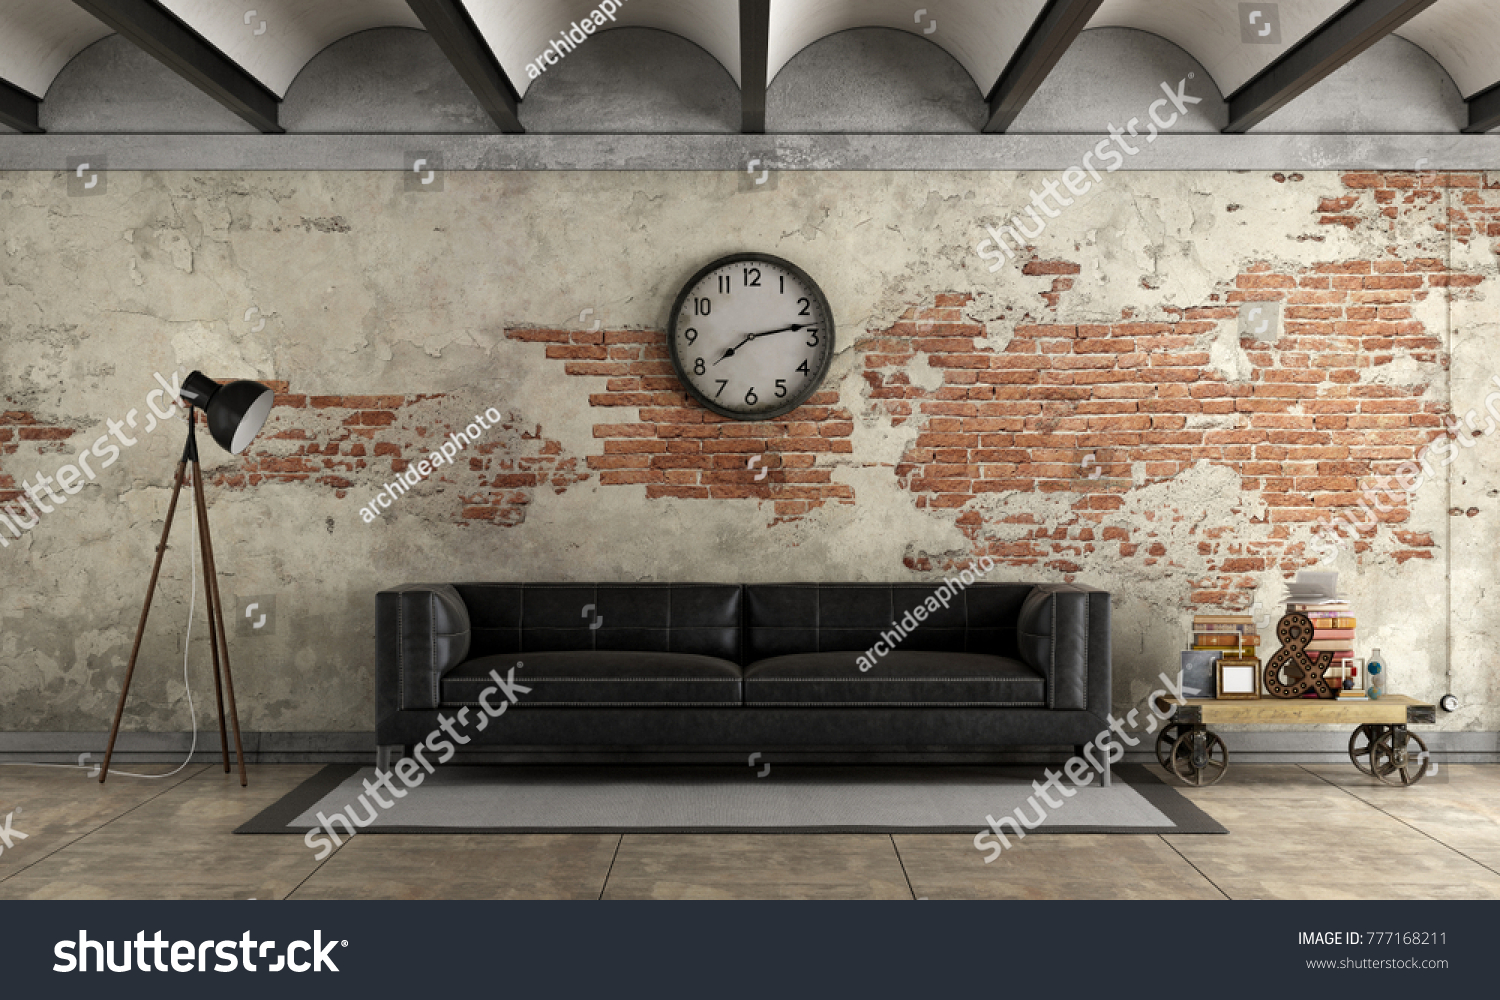 Brick Meubles Divan Lit Black Sofa Grunge Room Old Brick Stock Illustration Royalty Free